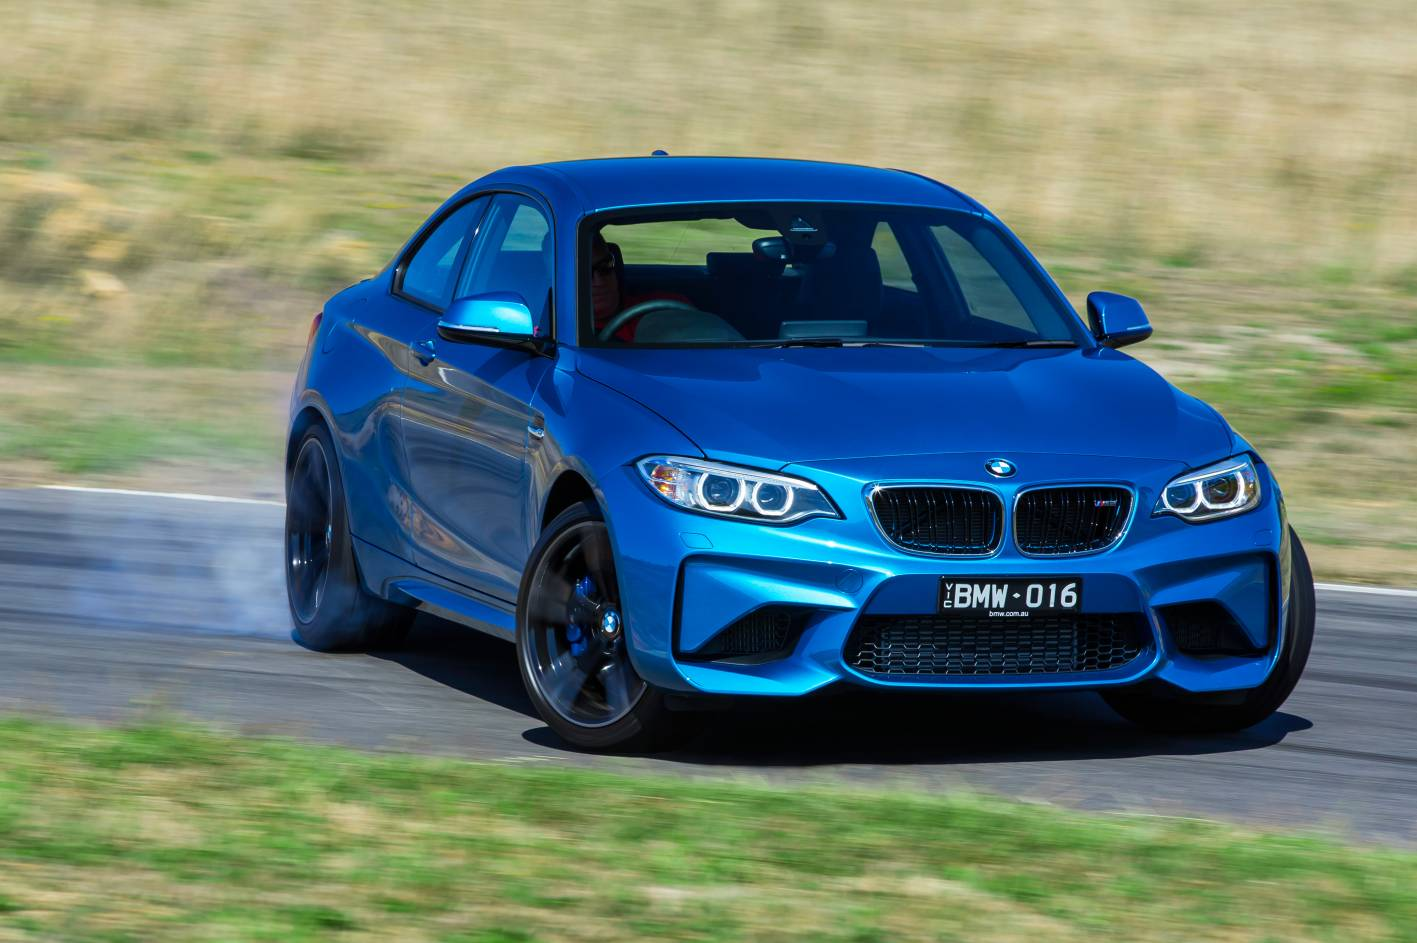 Bmw Cars In Australia >> Bmw M2 Allocation Increased In Australia Strong Demand For M Cars